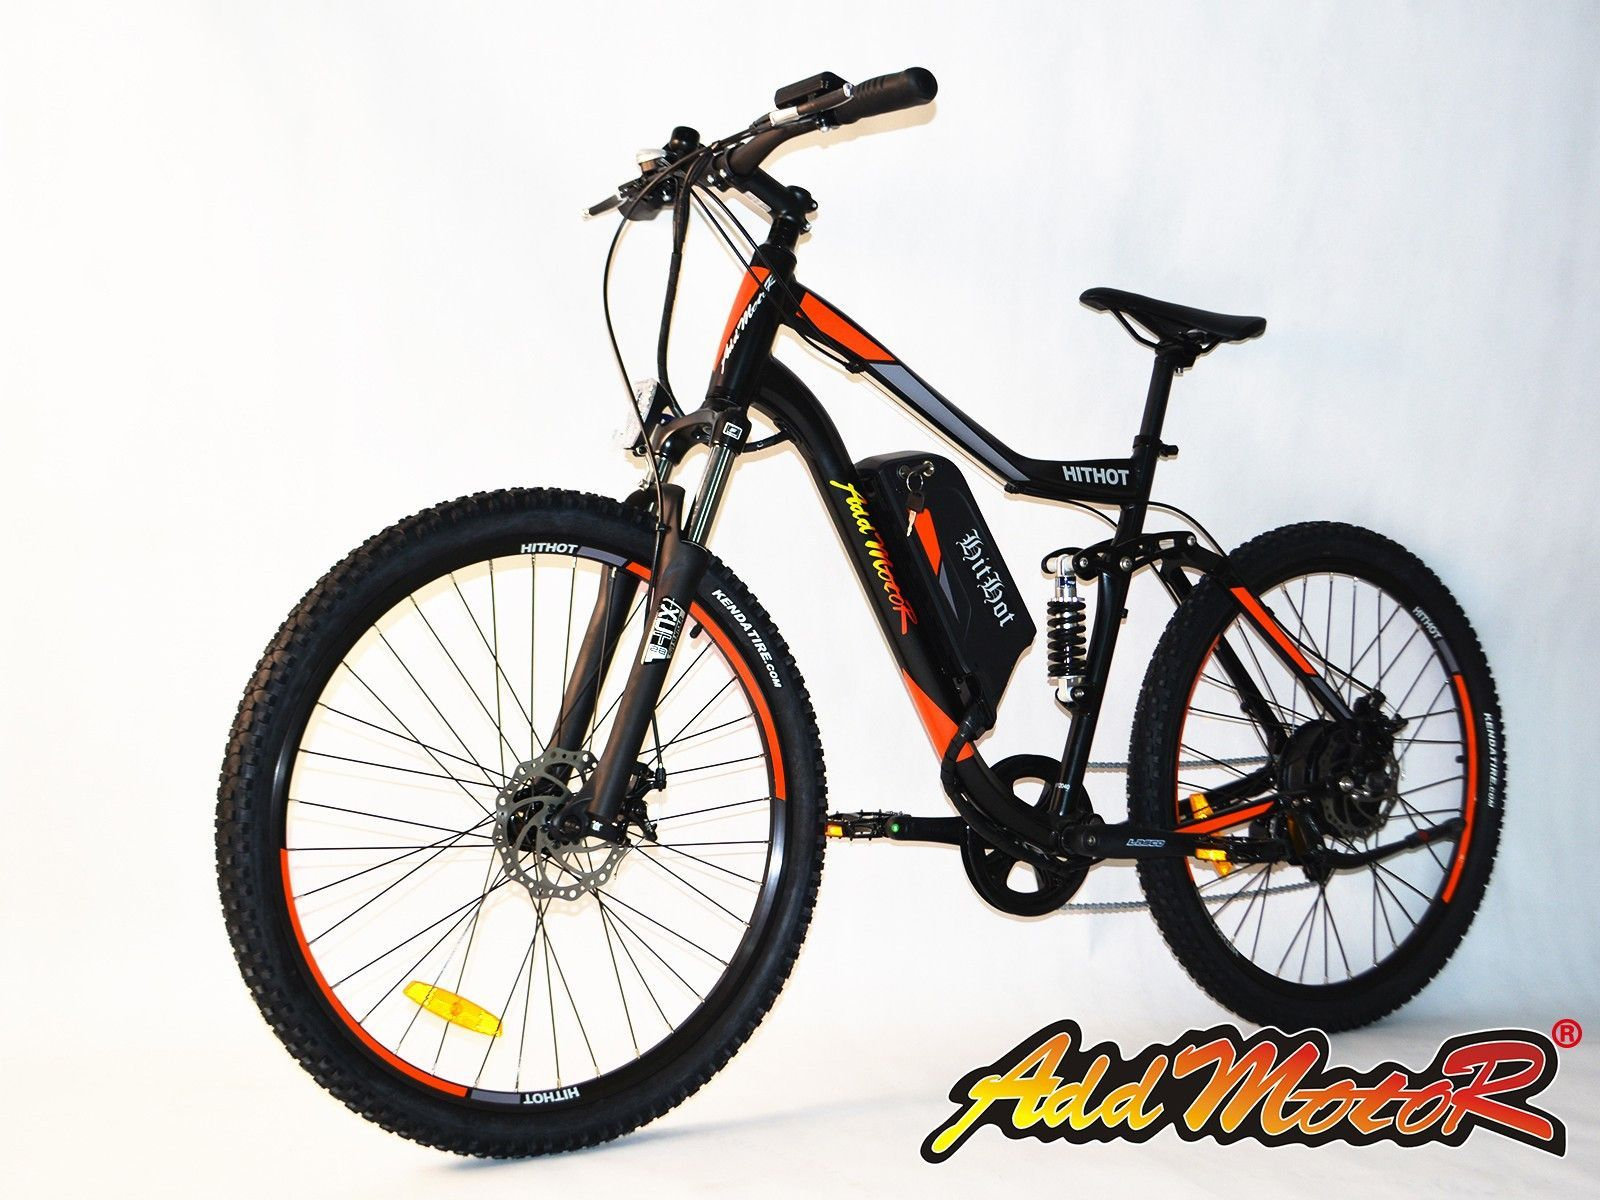 Addmotor Hithot H1 48v Dual Suspension Electric Mountain Bike